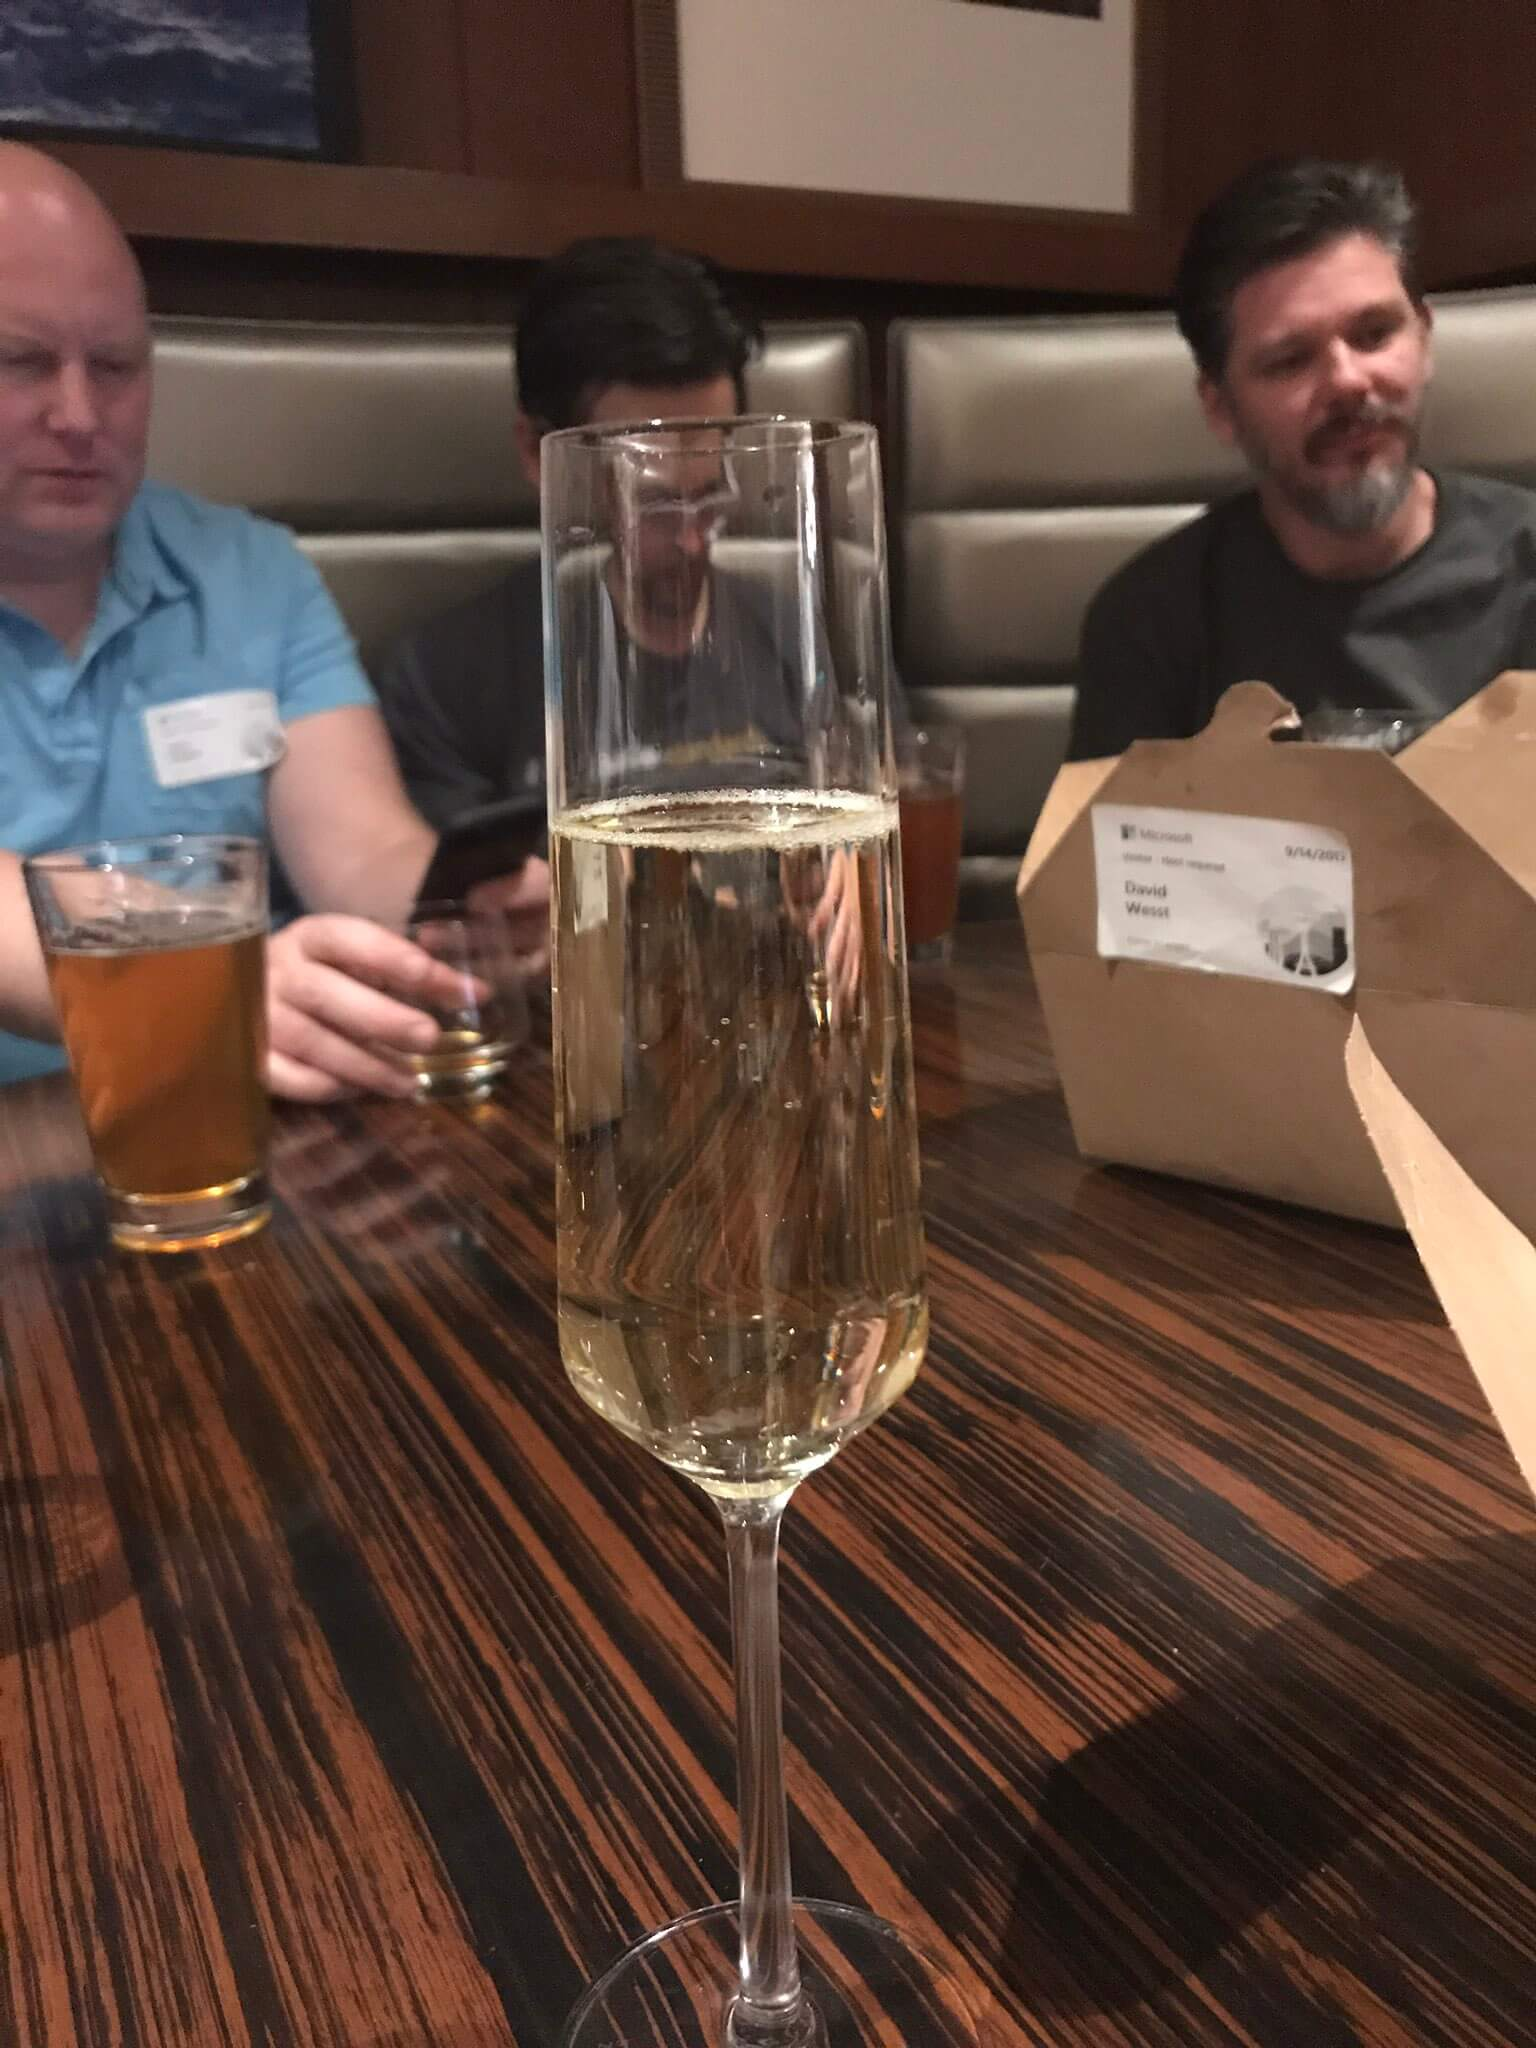 A mostly full Champagne flute in the foreground, a cardboard takeaway container behind it, and blurry people sitting in a booth in the background.